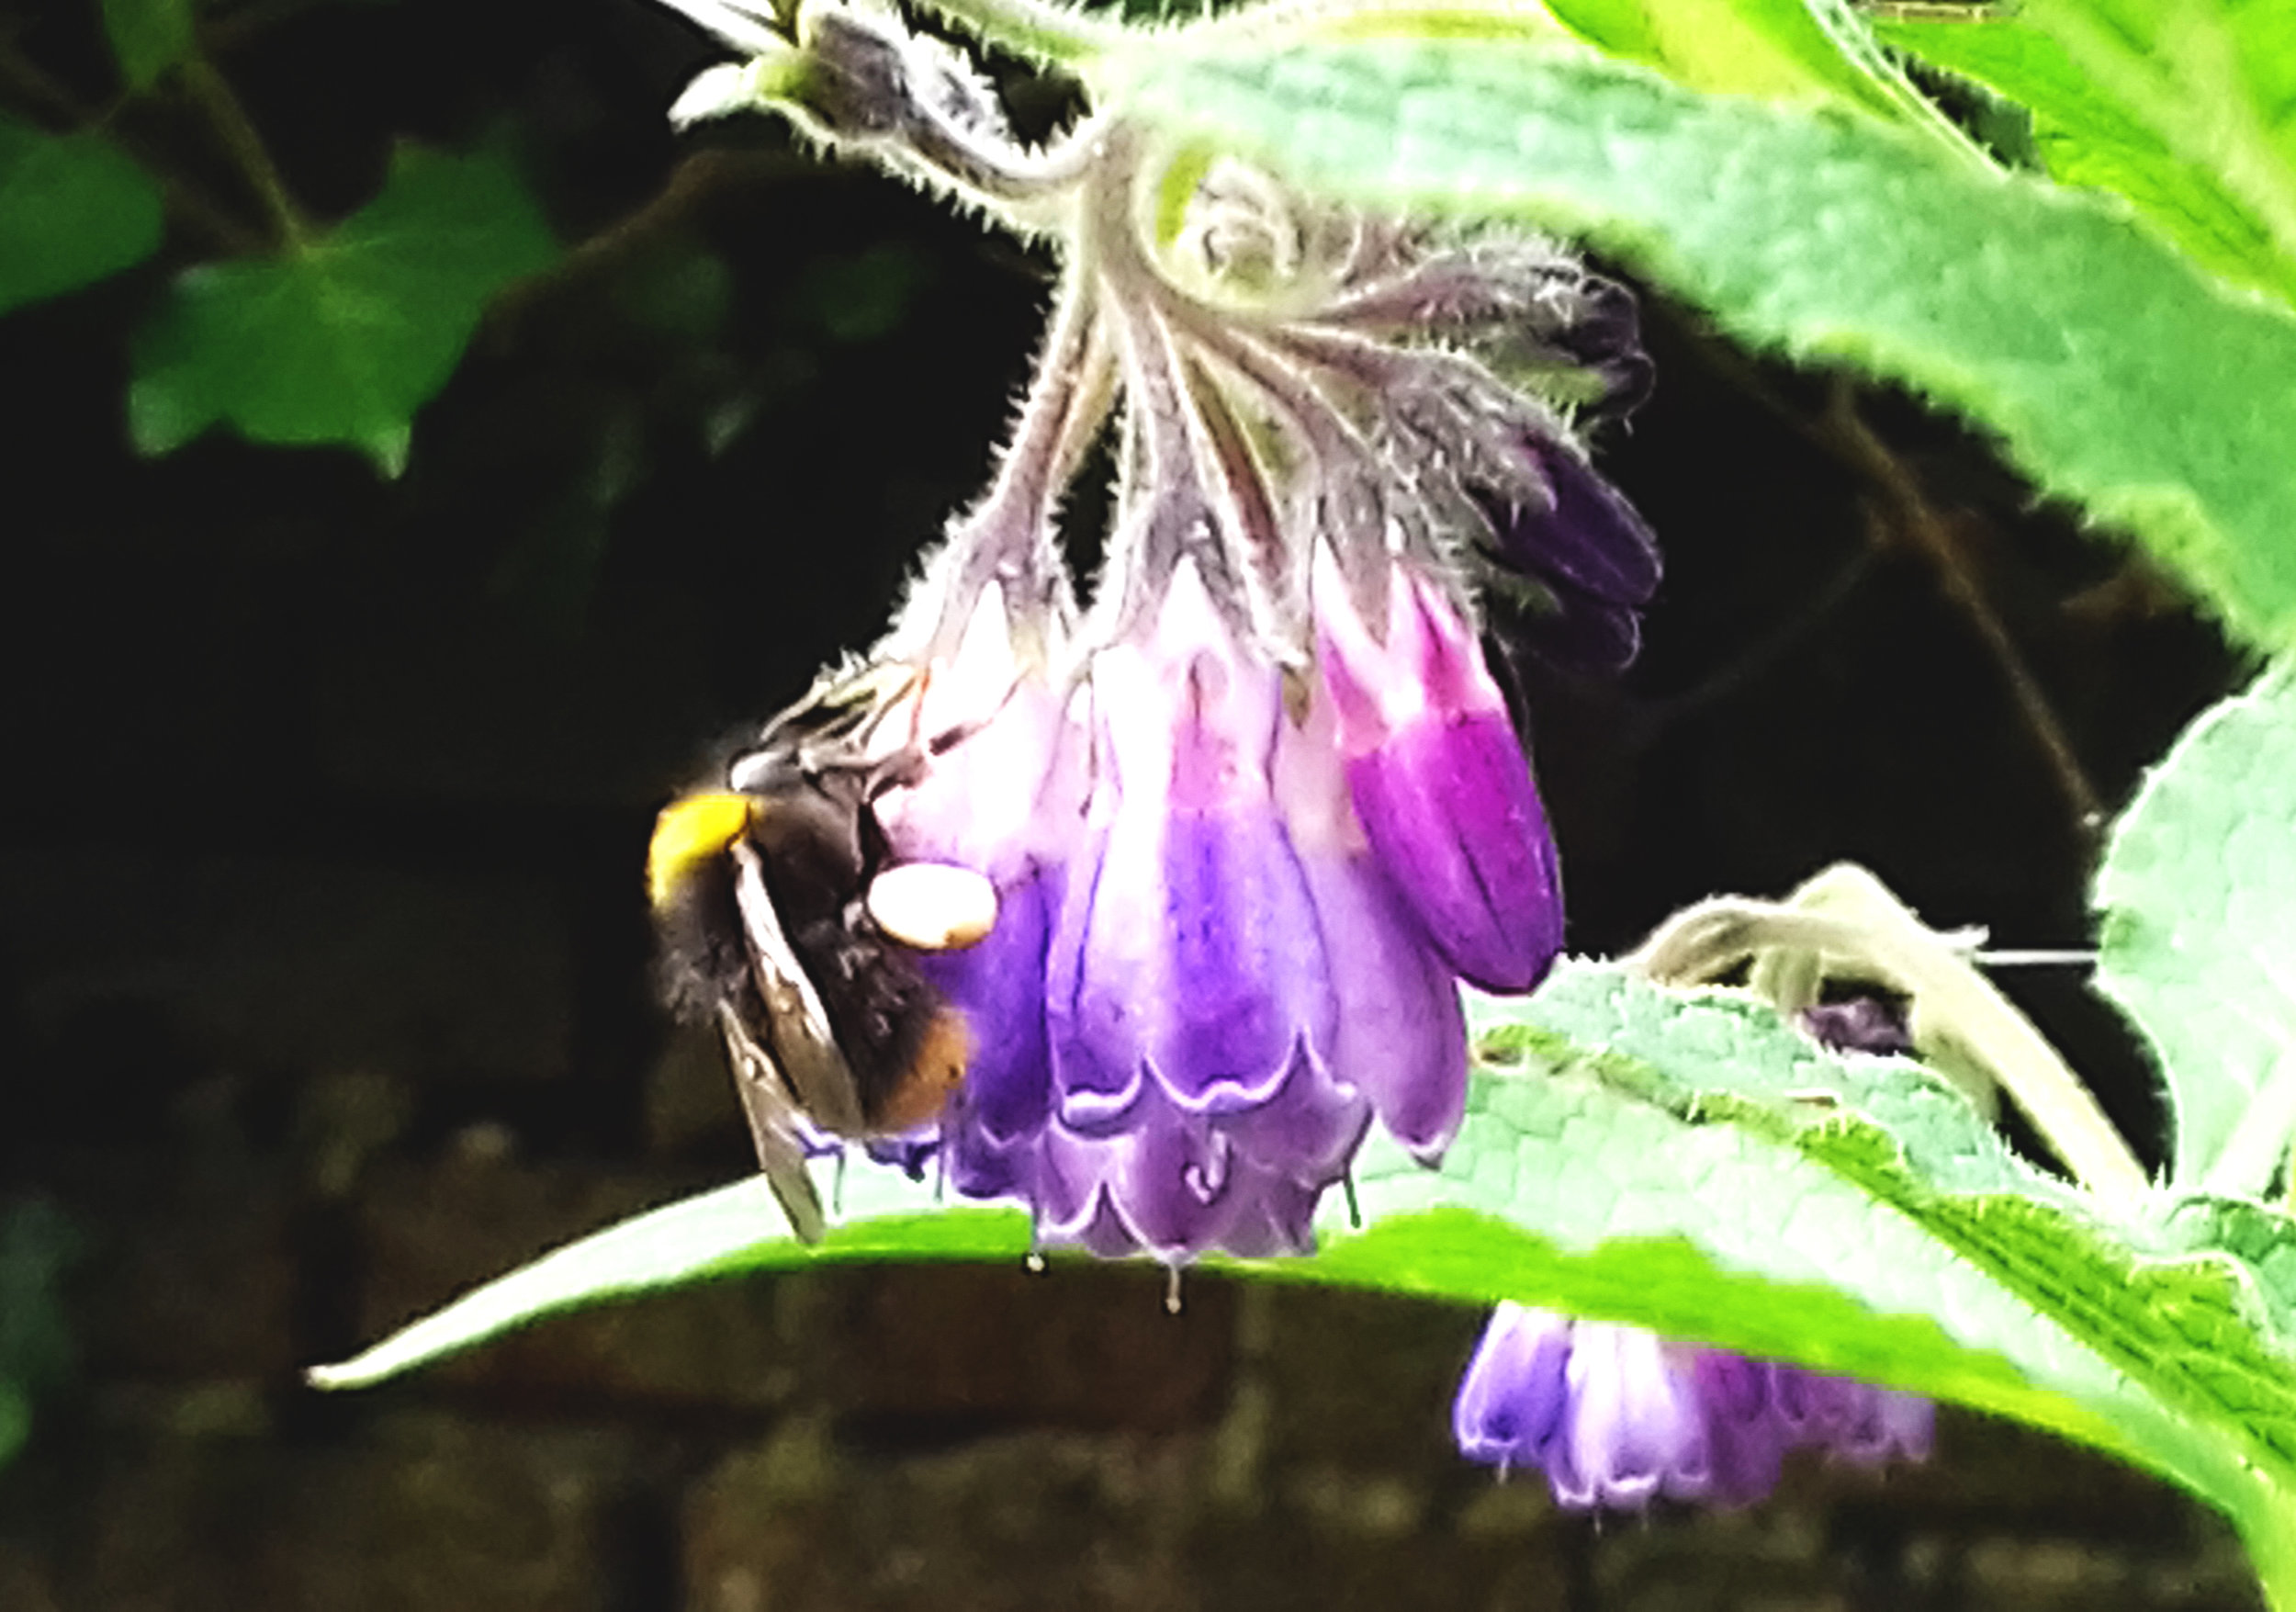 Bumble Bee on Comfrey Flower